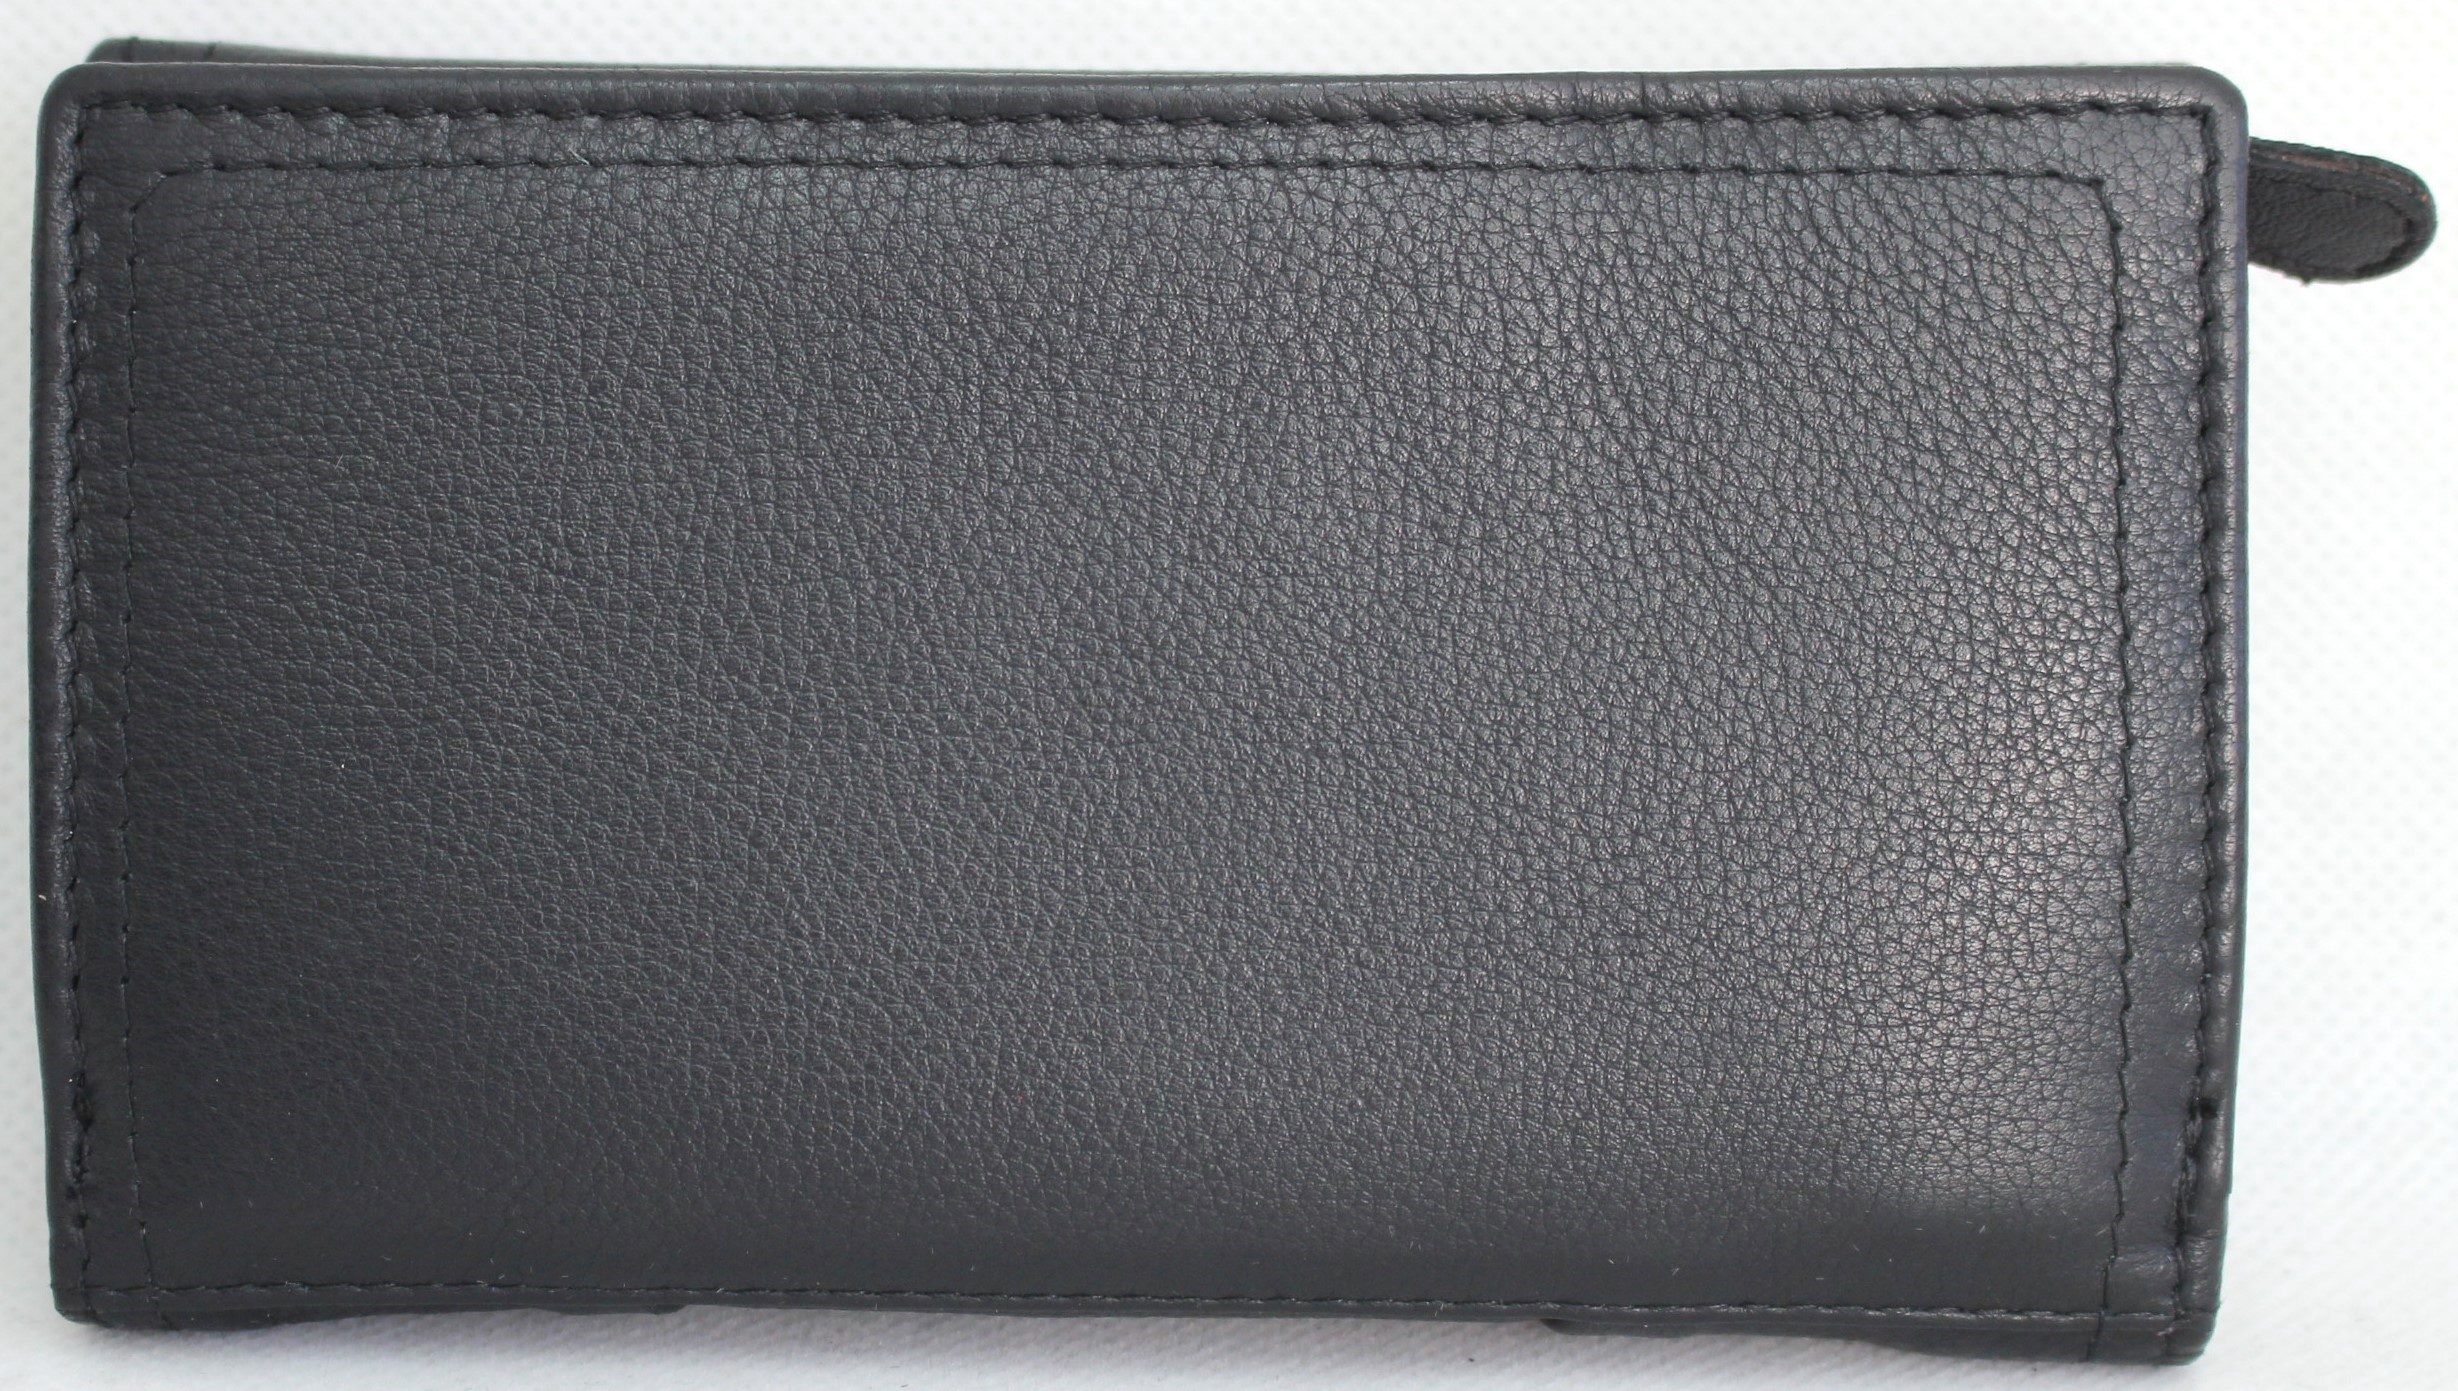 RFID SECURITY LINING 21004 Quality Full Grain Cow Hide Leather Purse Style No